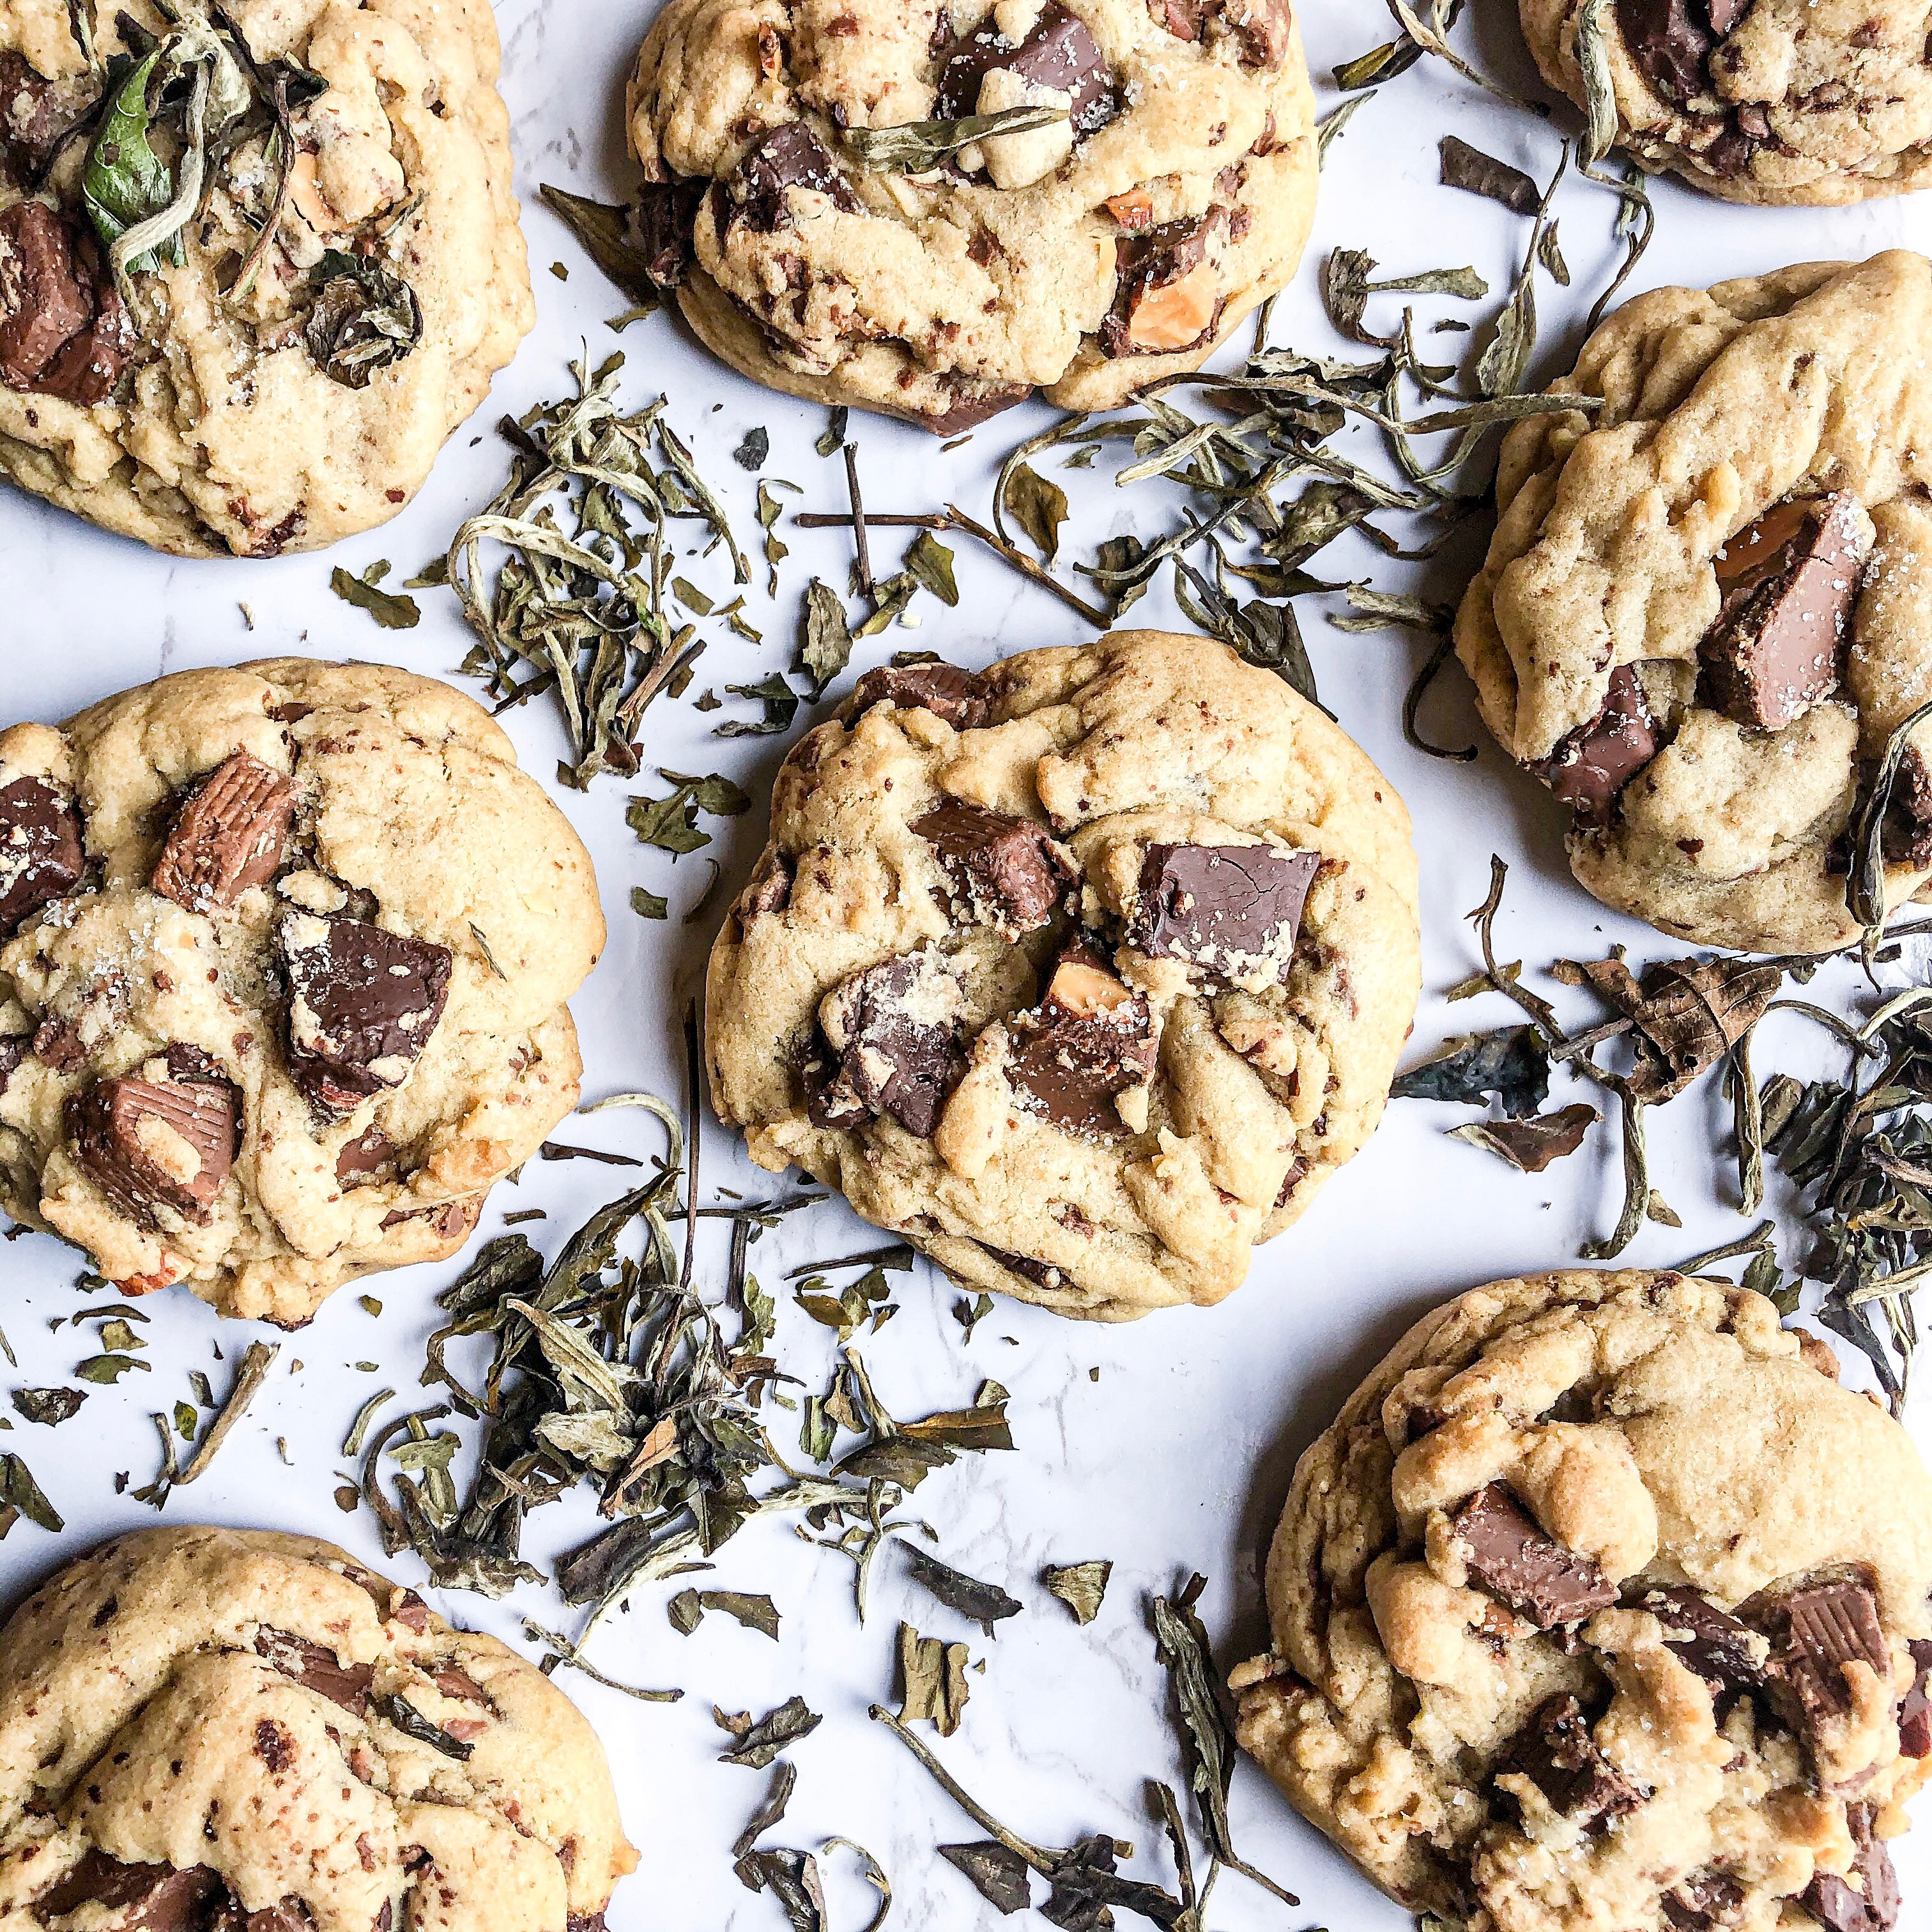 Super chunky chocolate chip cookies